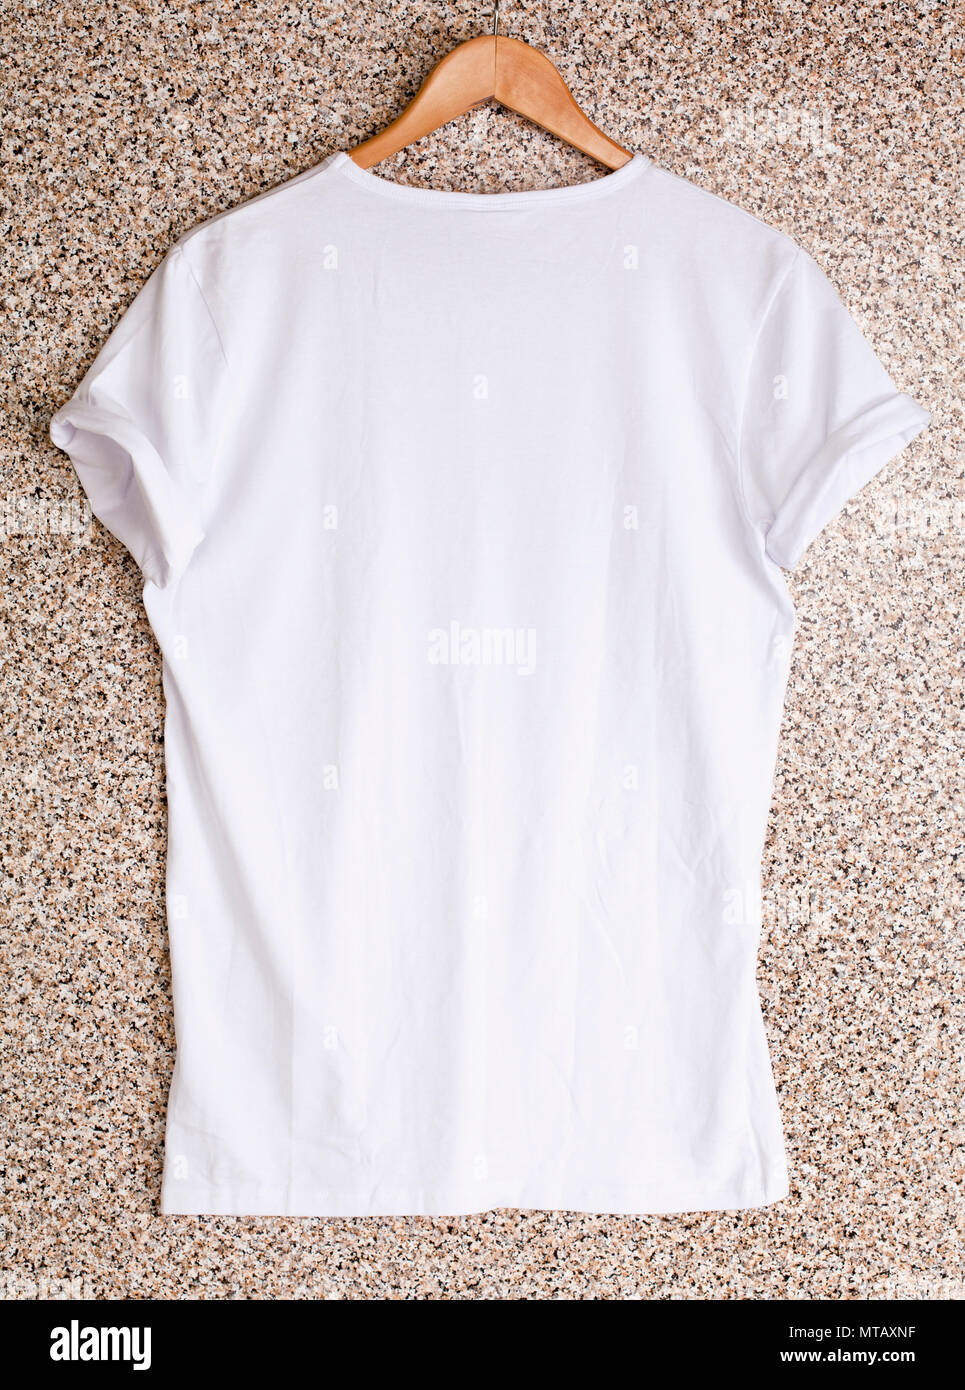 White T Shirt Template On Hanger Ready For Your Own Design Stock